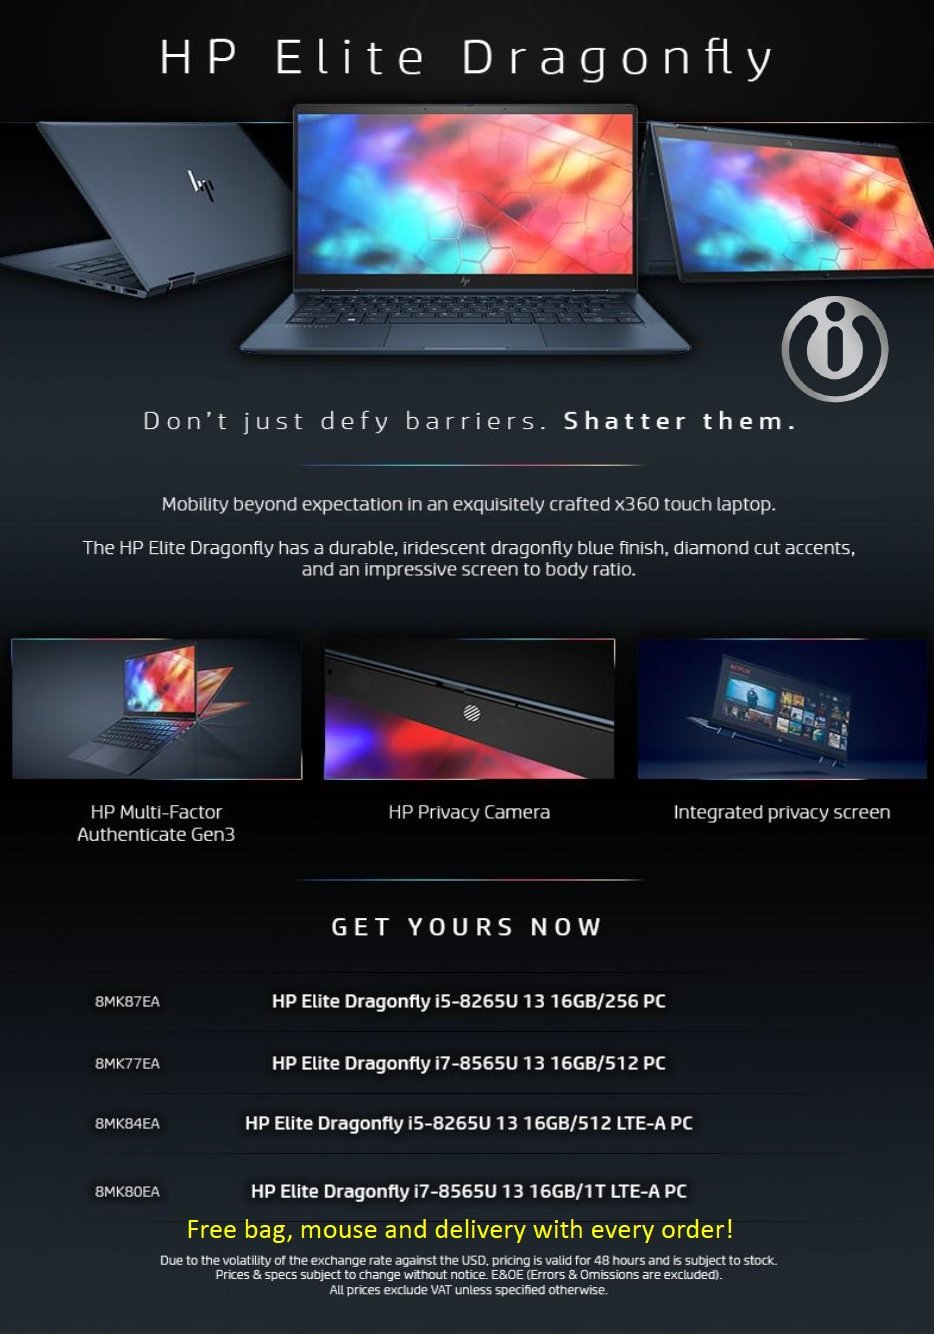 HP Elite Dragonfly Laptop - Westech Special Promotion